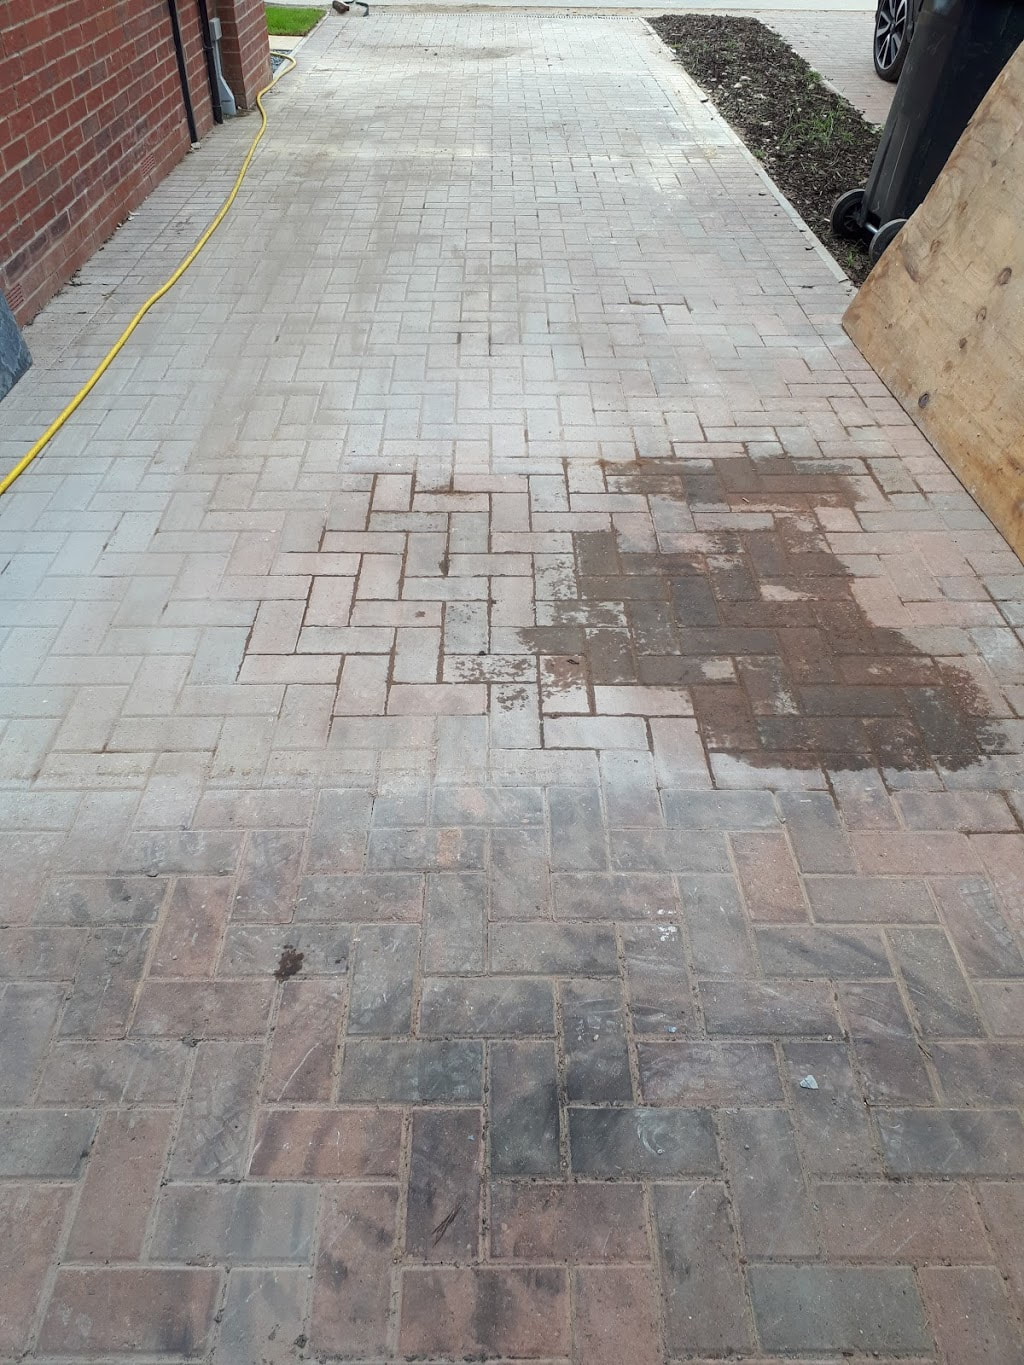 Block paving before being professionally cleaned